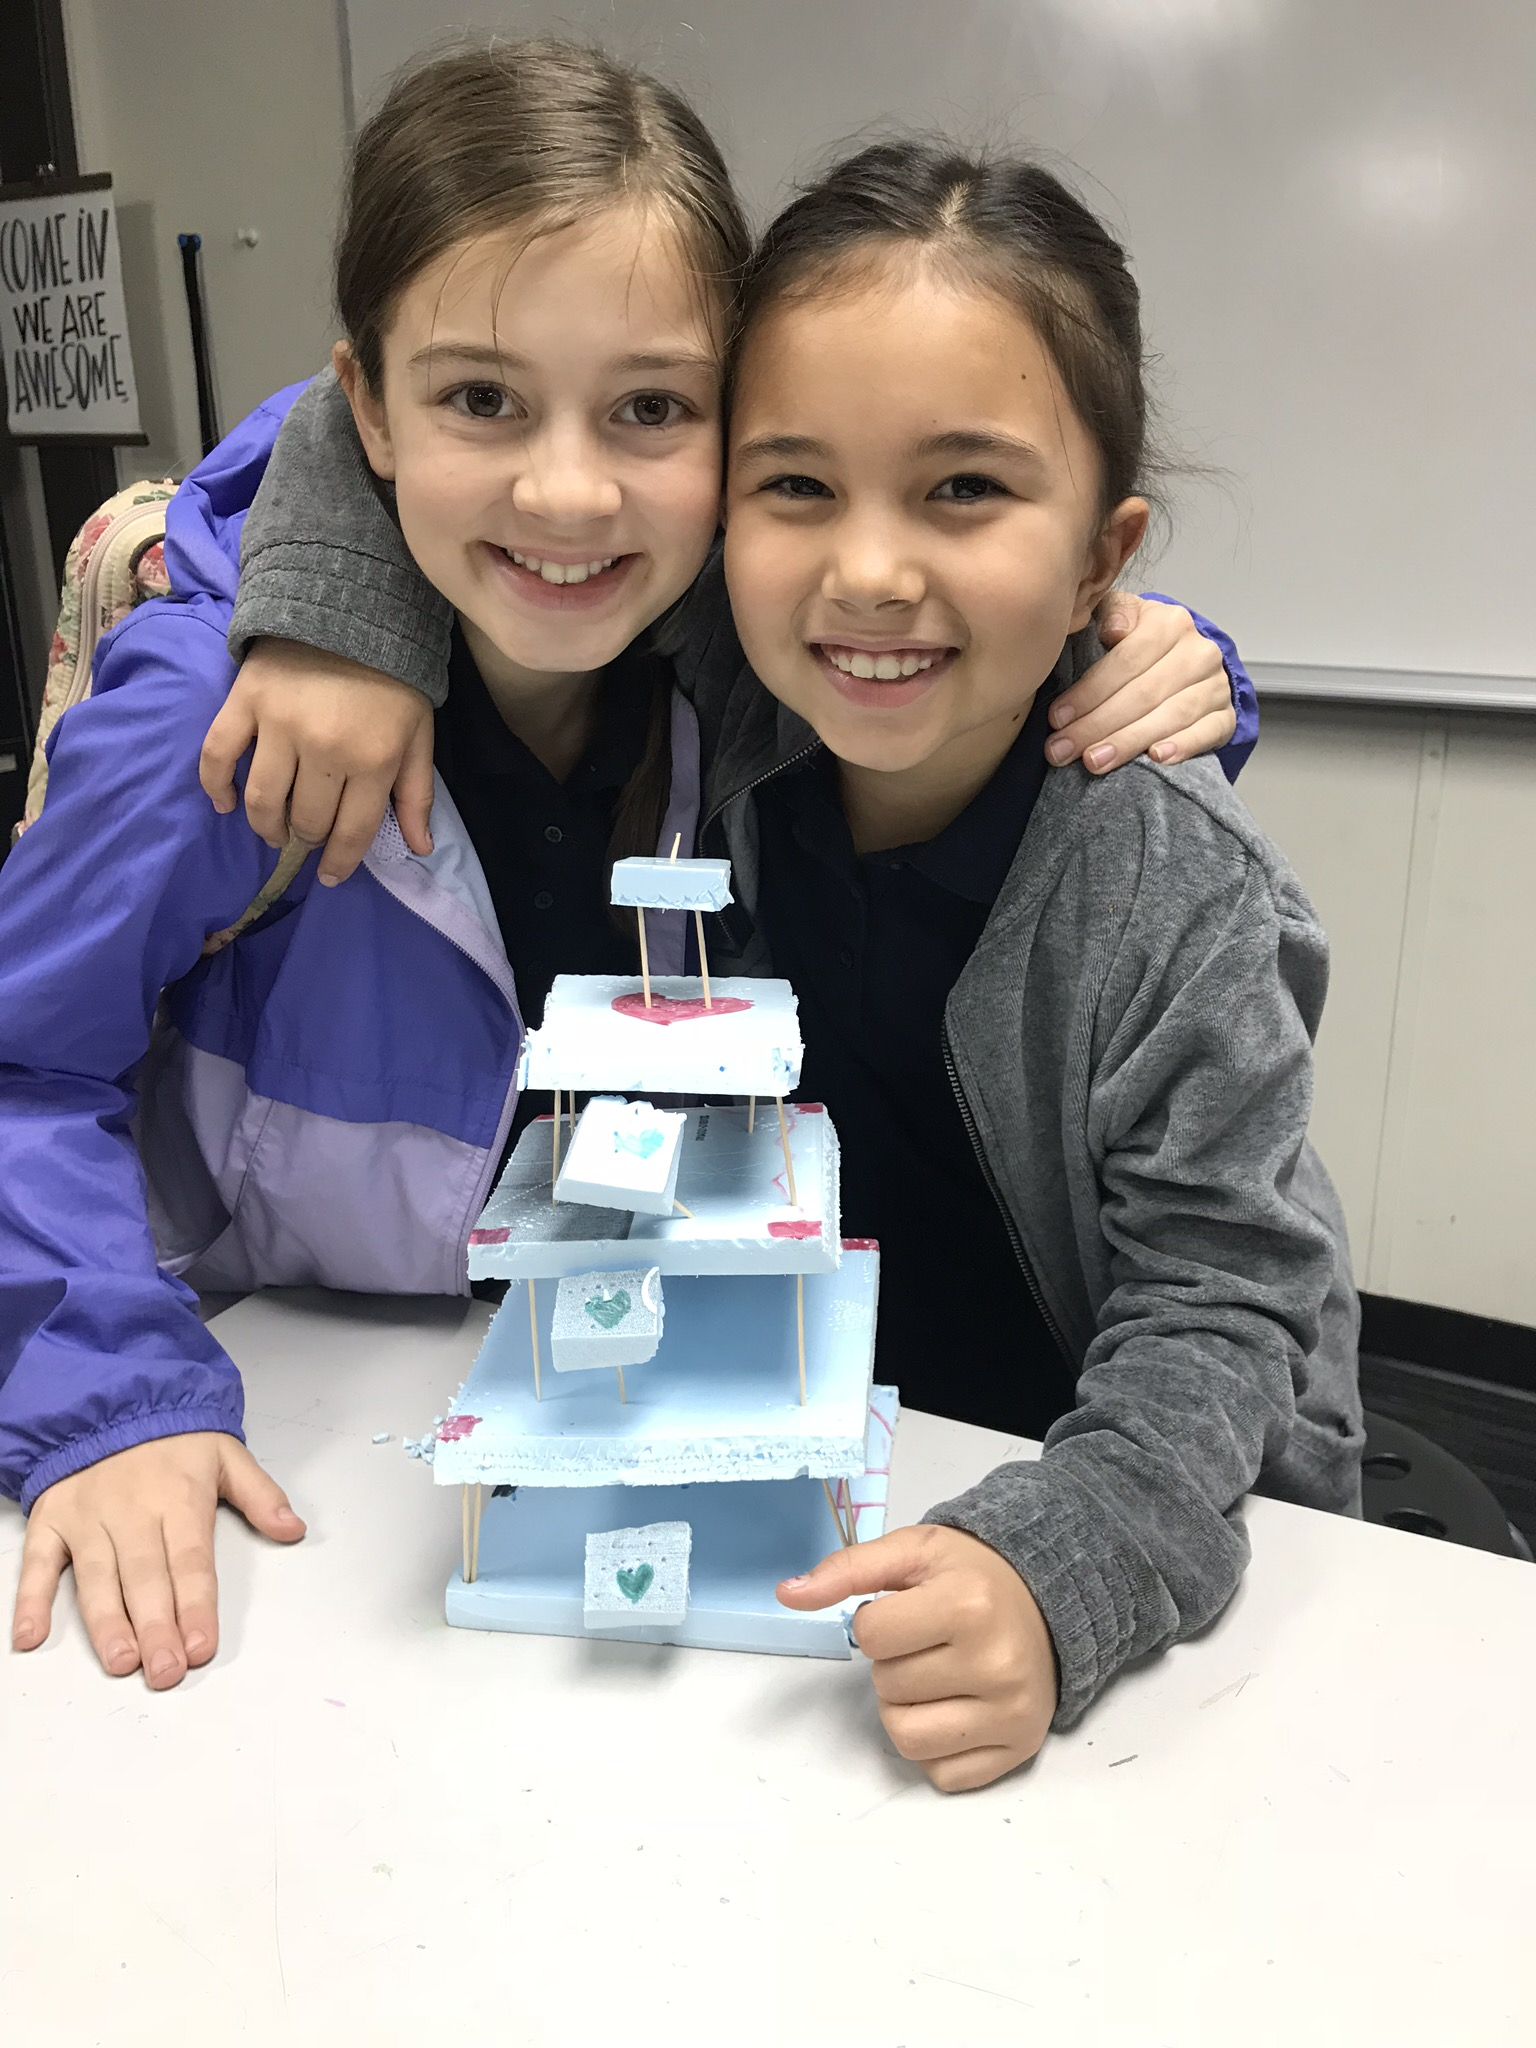 A brief survey of Japanese architecture required the study of proportions, and the use of multiplication to calculate measurements for each layer of these cool, earthquake-proof buildings! Math skills - check. Developing a global awareness- check again. Having a blast while doing it - bonus!